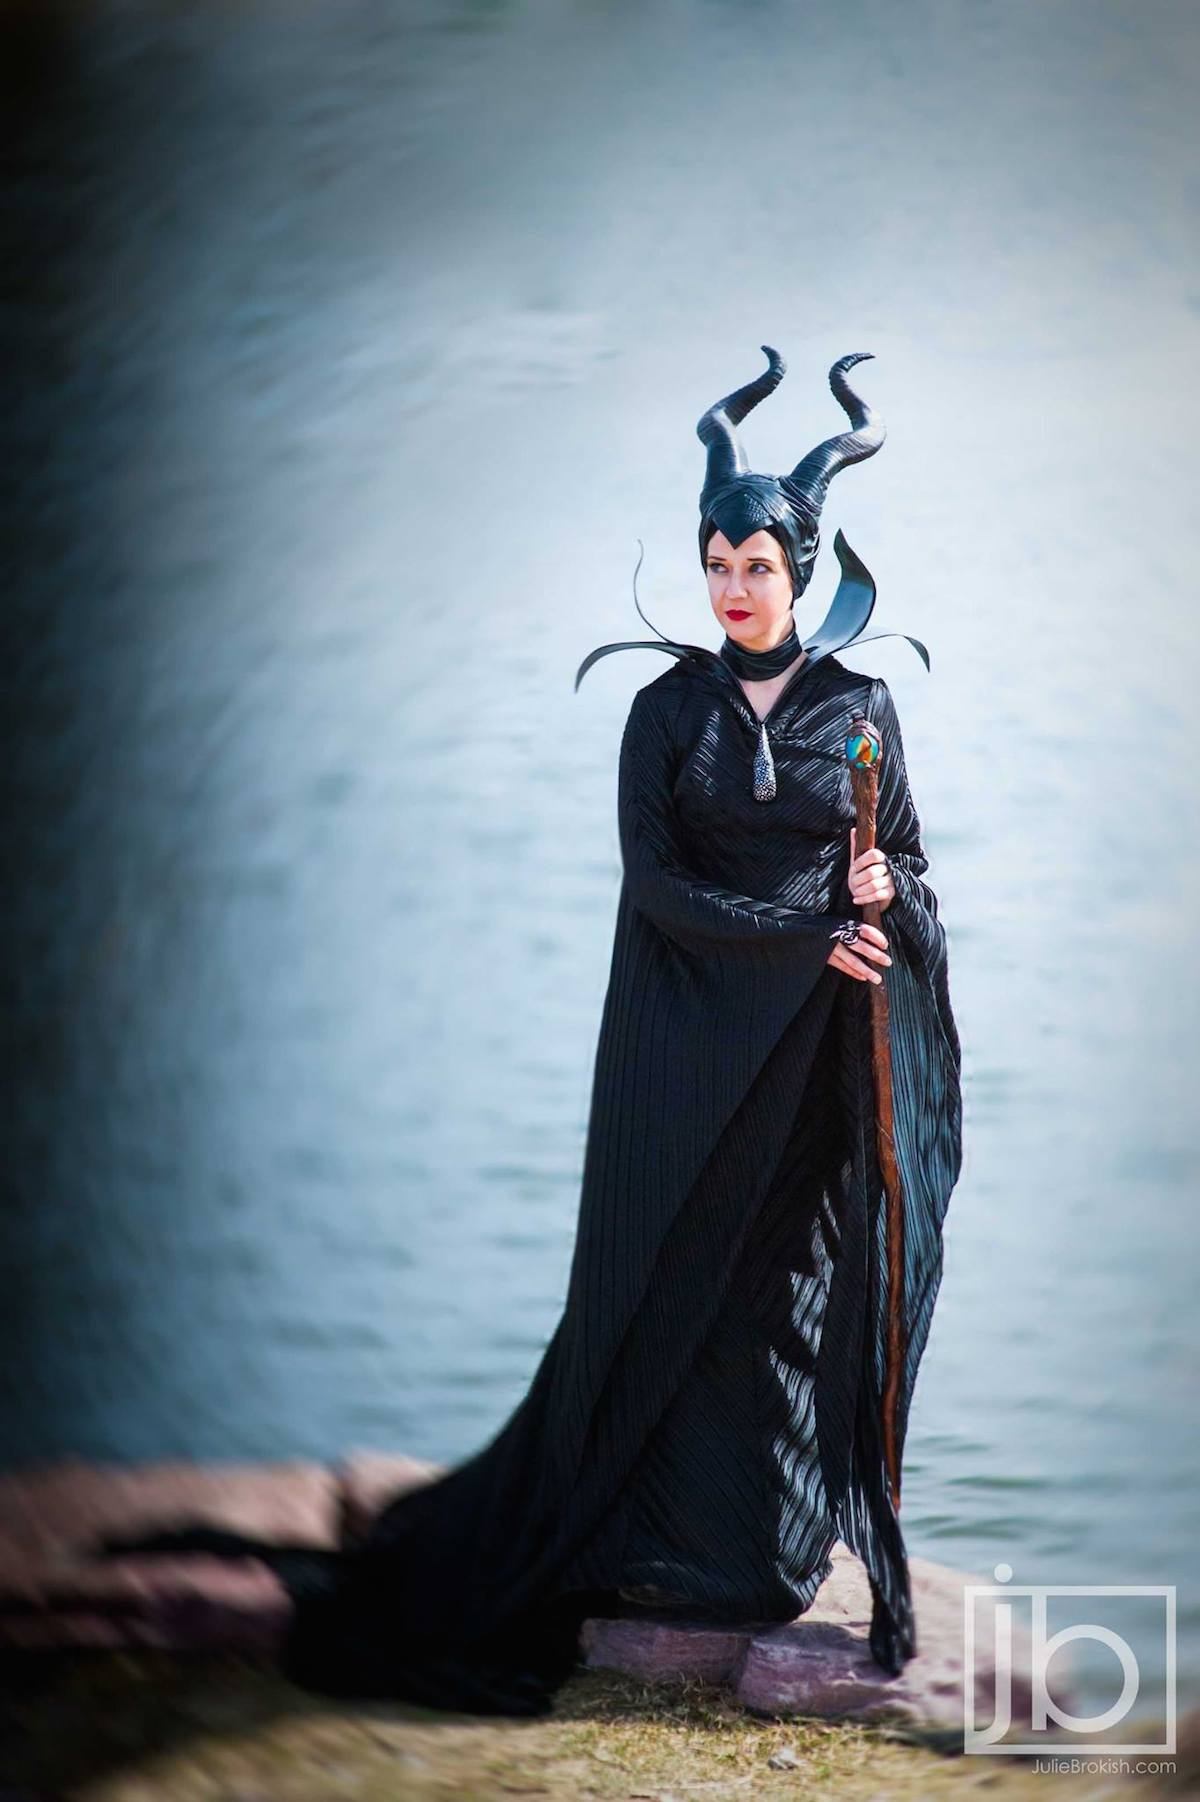 Julie Brokish Malificent 3